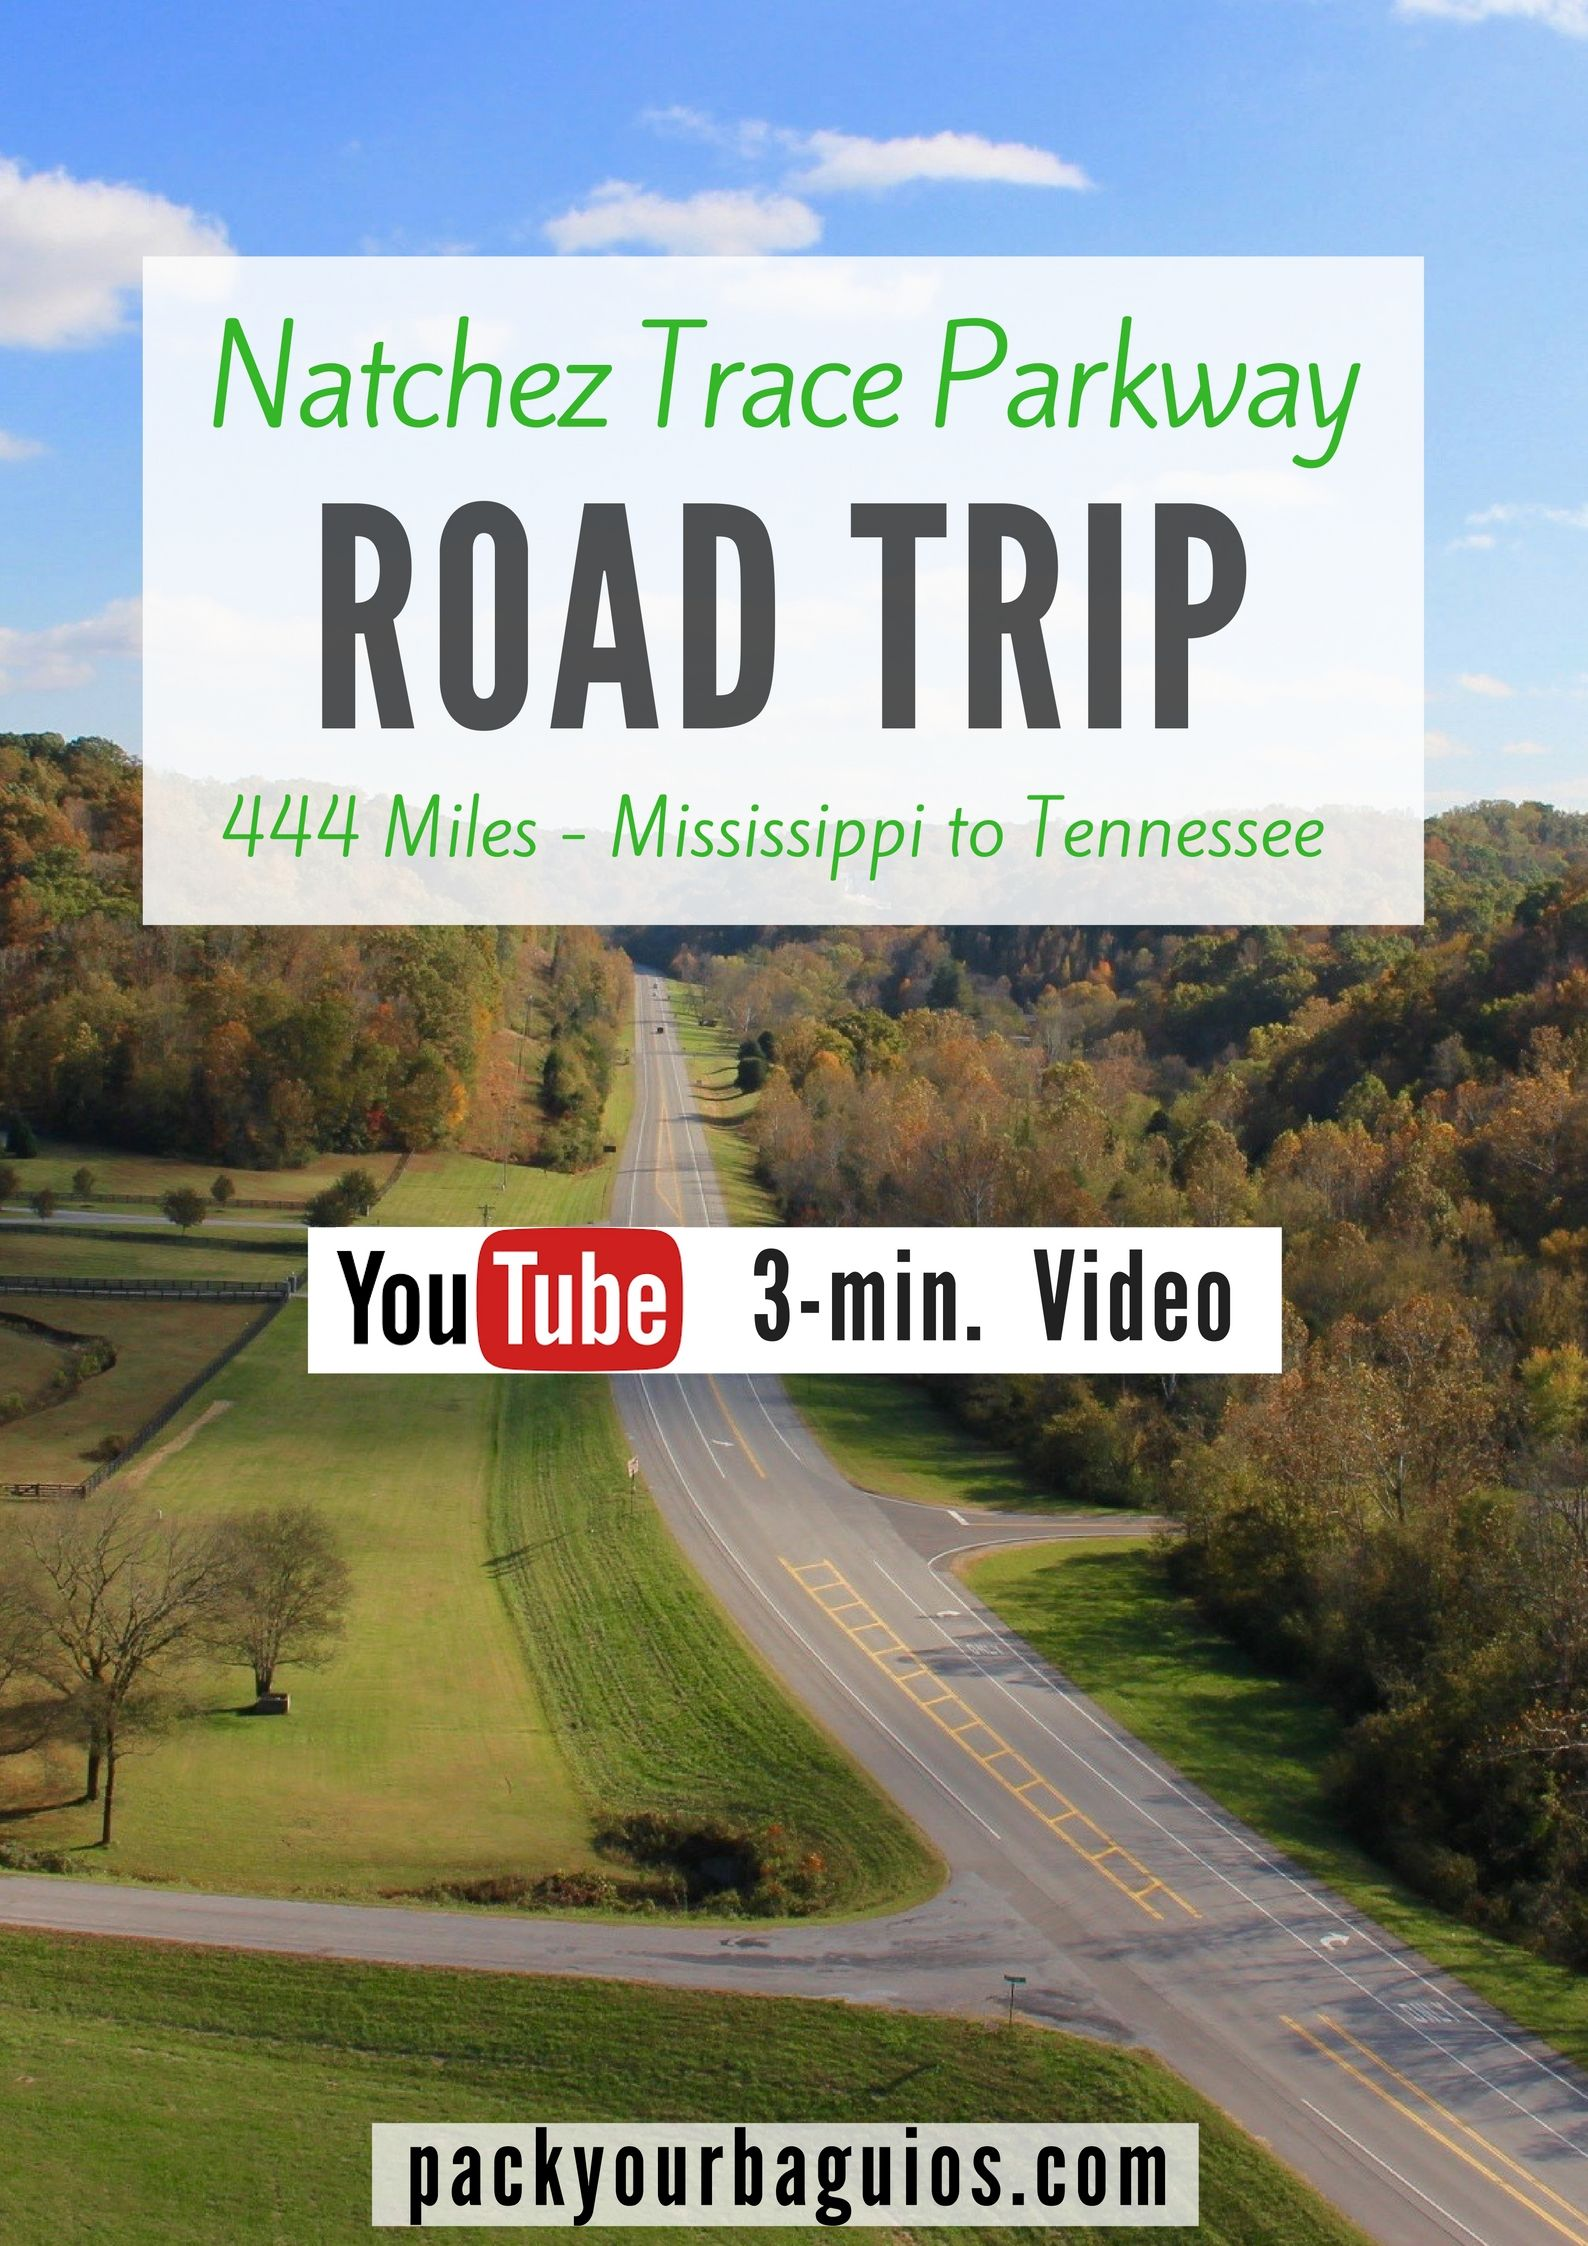 Natchez Trace Parkway Road Trip Usa Road Trip Mississippi Travel Tennessee Travel Youtube Video Pack Y Road Trip Usa Mississippi Travel Natchez Trace